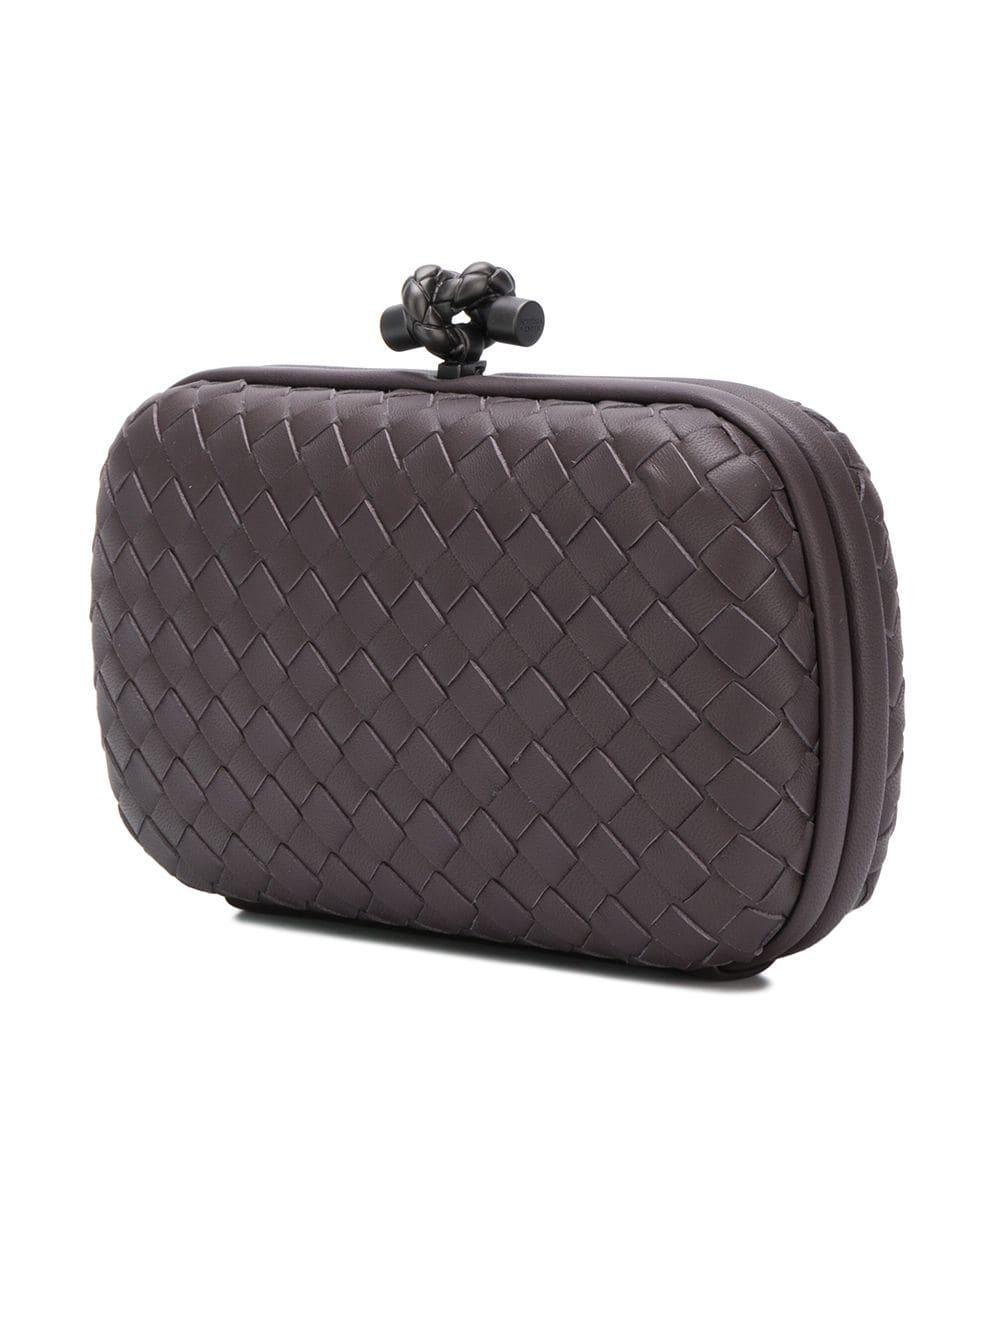 b66224df6e Bottega Veneta - Brown Intrecciato Clutch - Lyst. View fullscreen